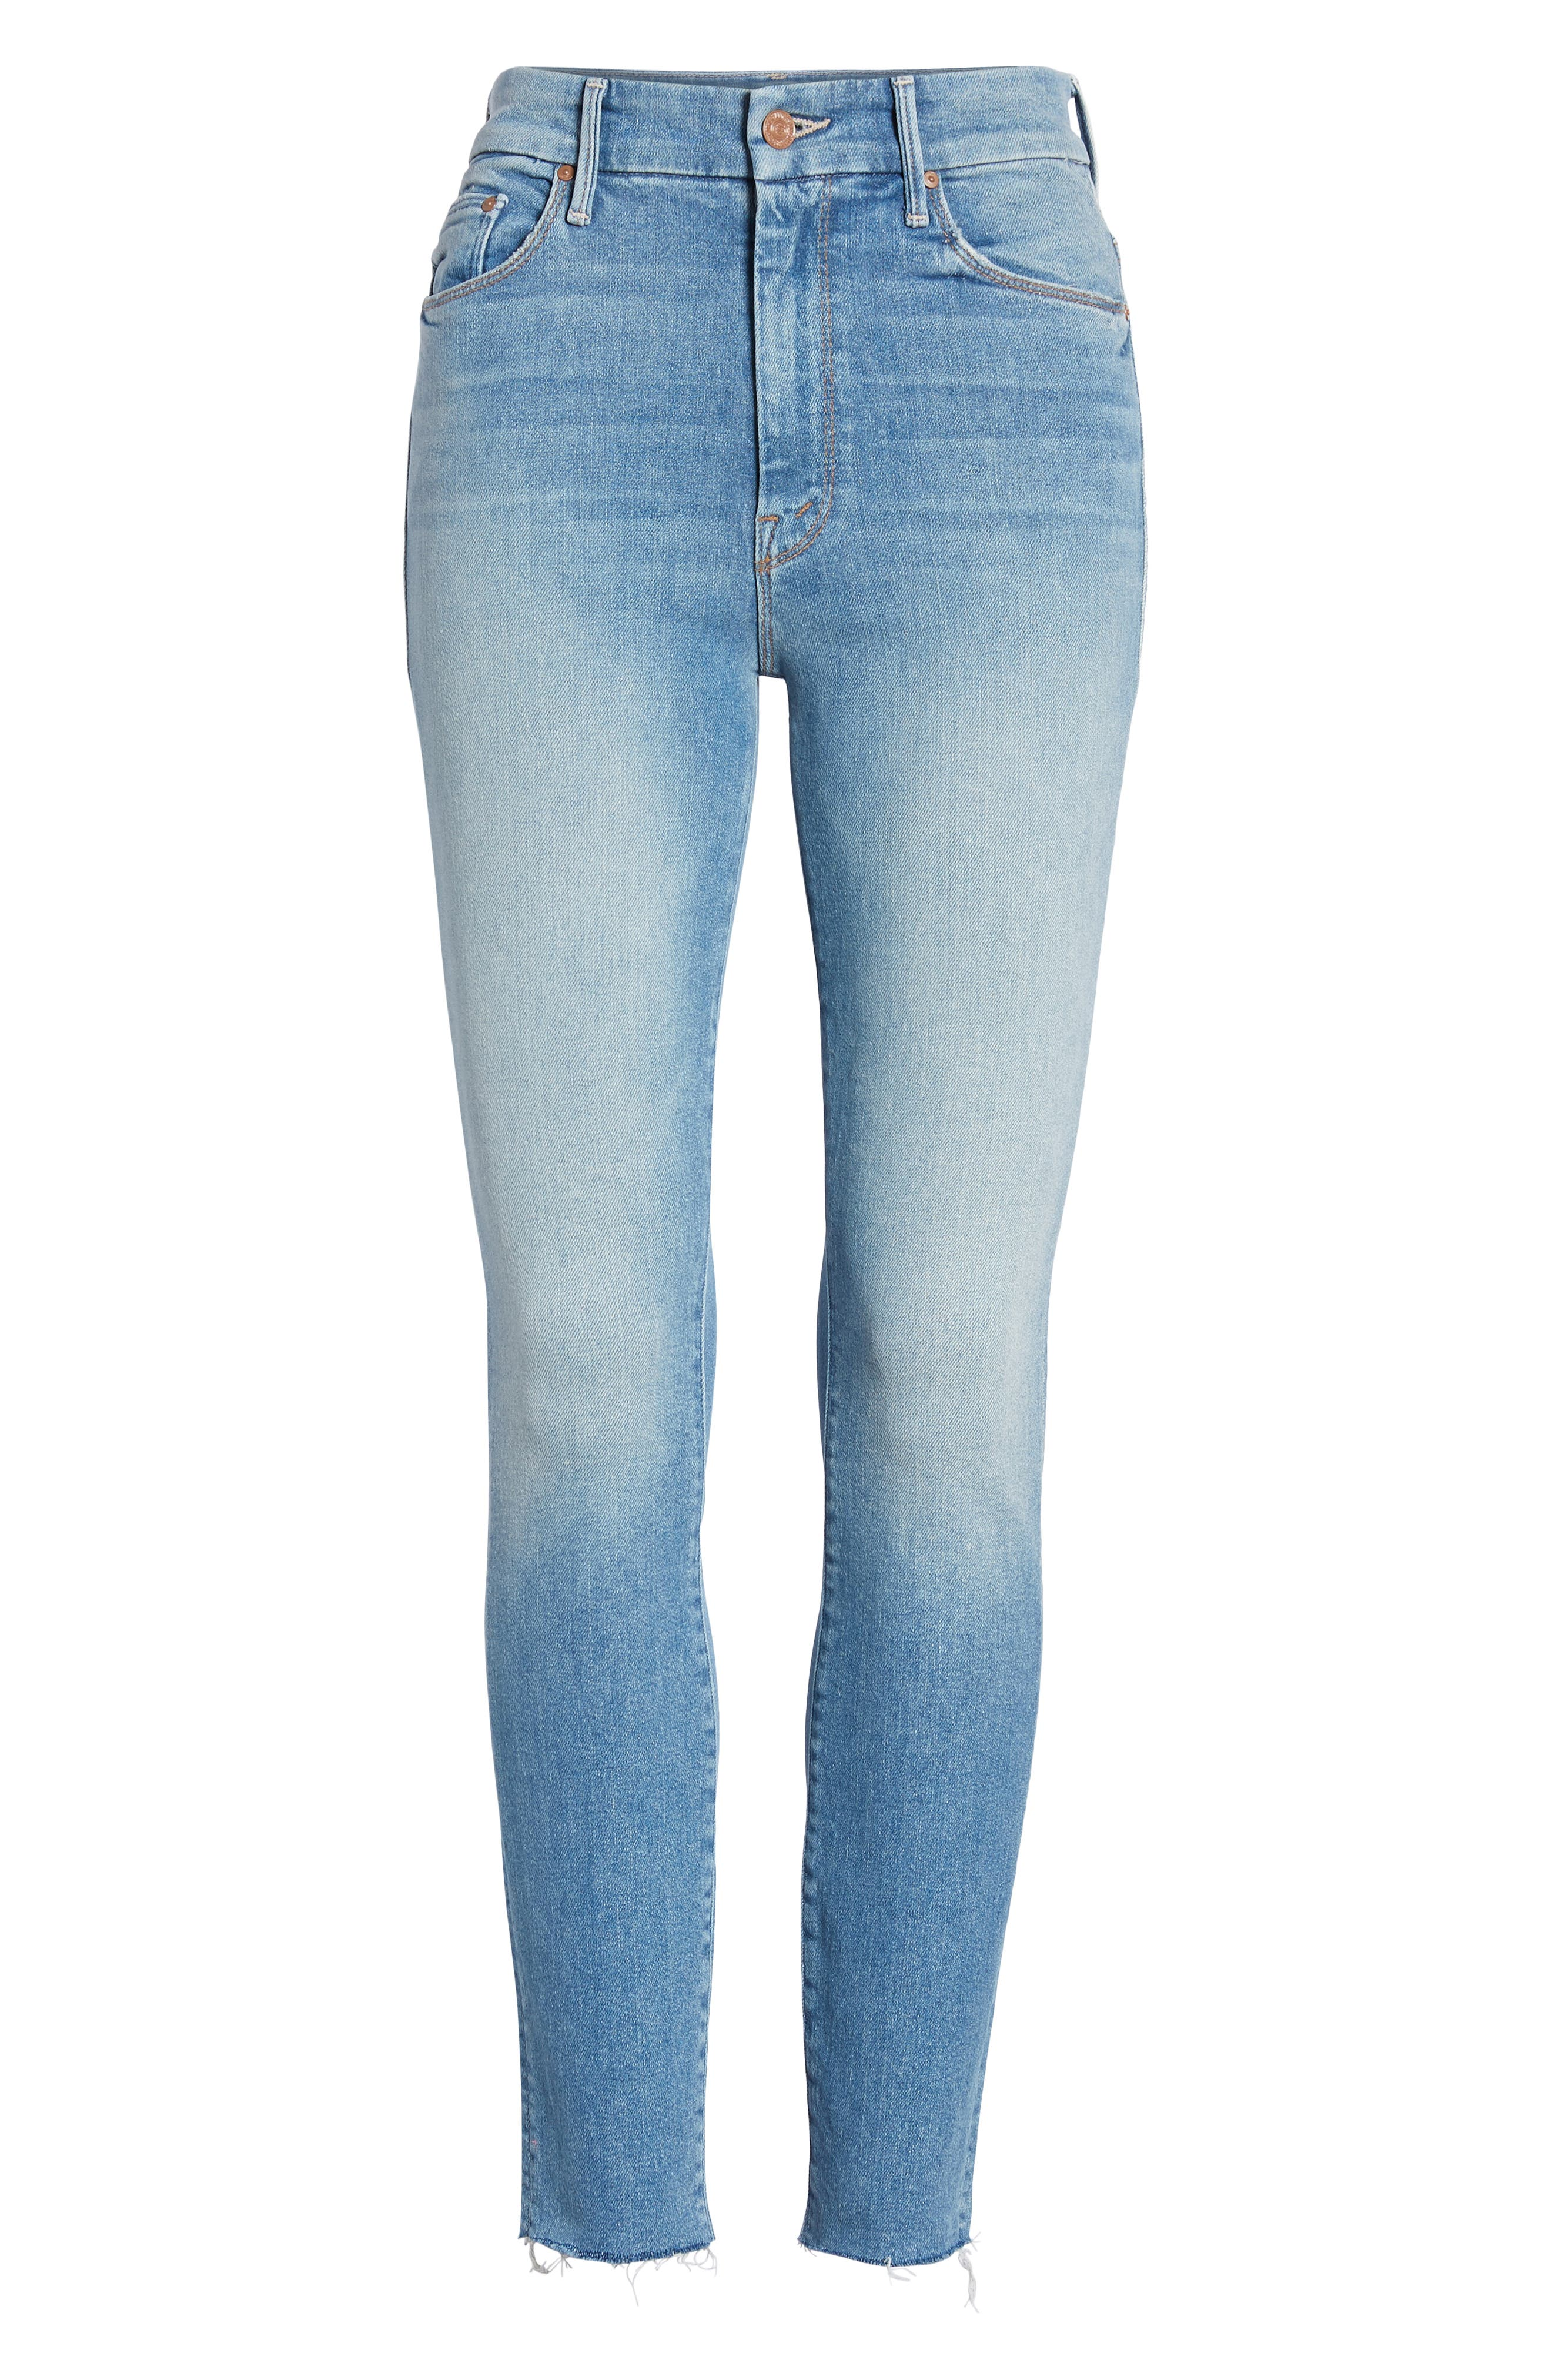 MOTHER, The Looker High Waist Fray Ankle Skinny Jeans, Alternate thumbnail 7, color, LEOPARD